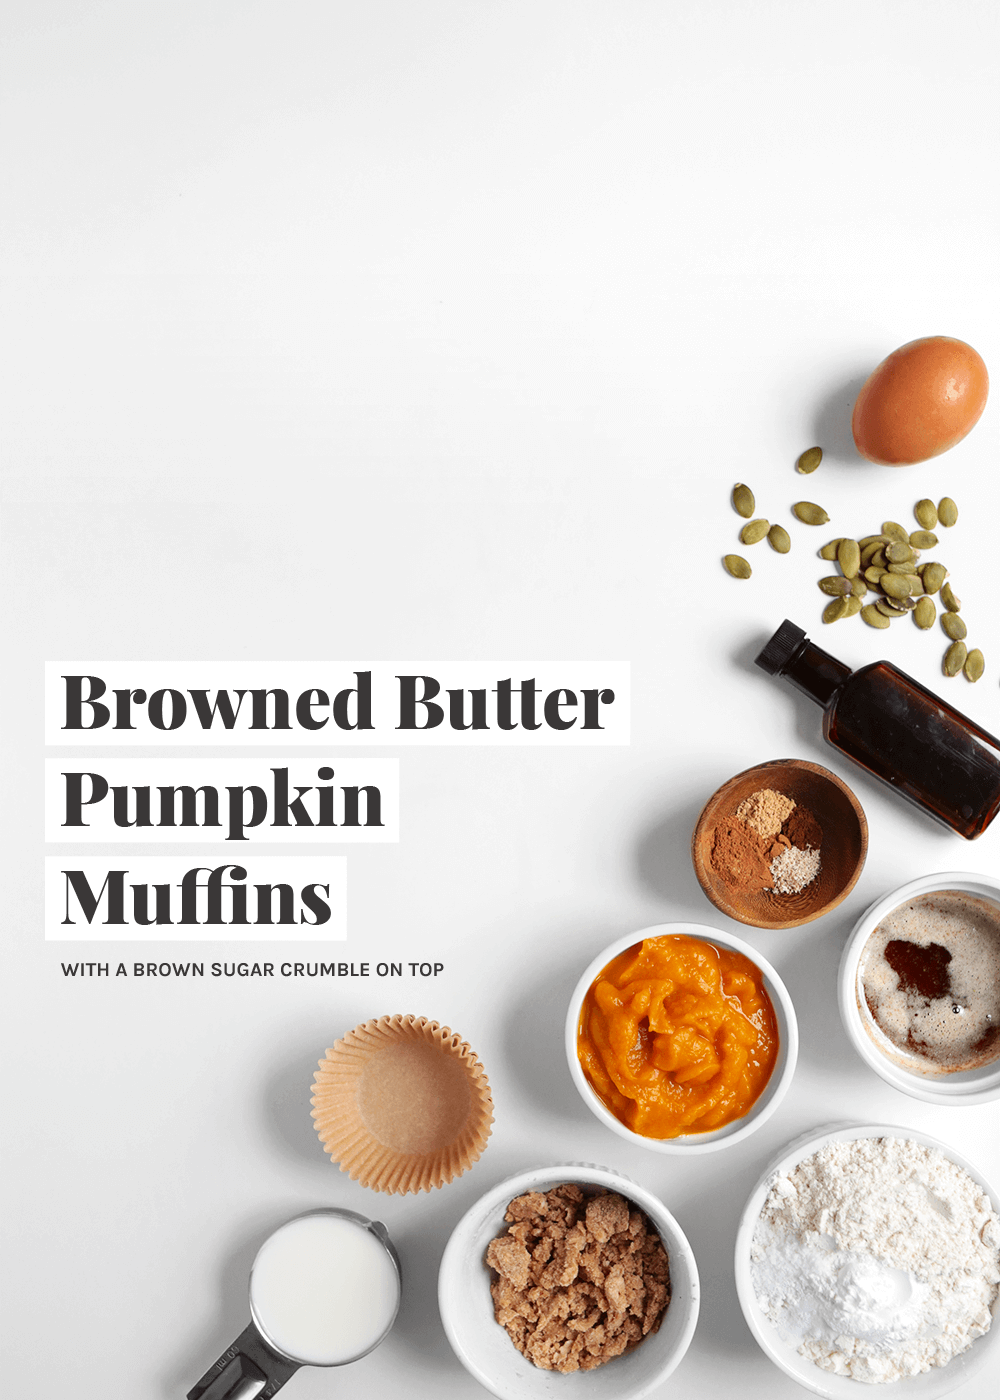 How to make Browned Butter Pumpkin Muffins from the Faux Martha